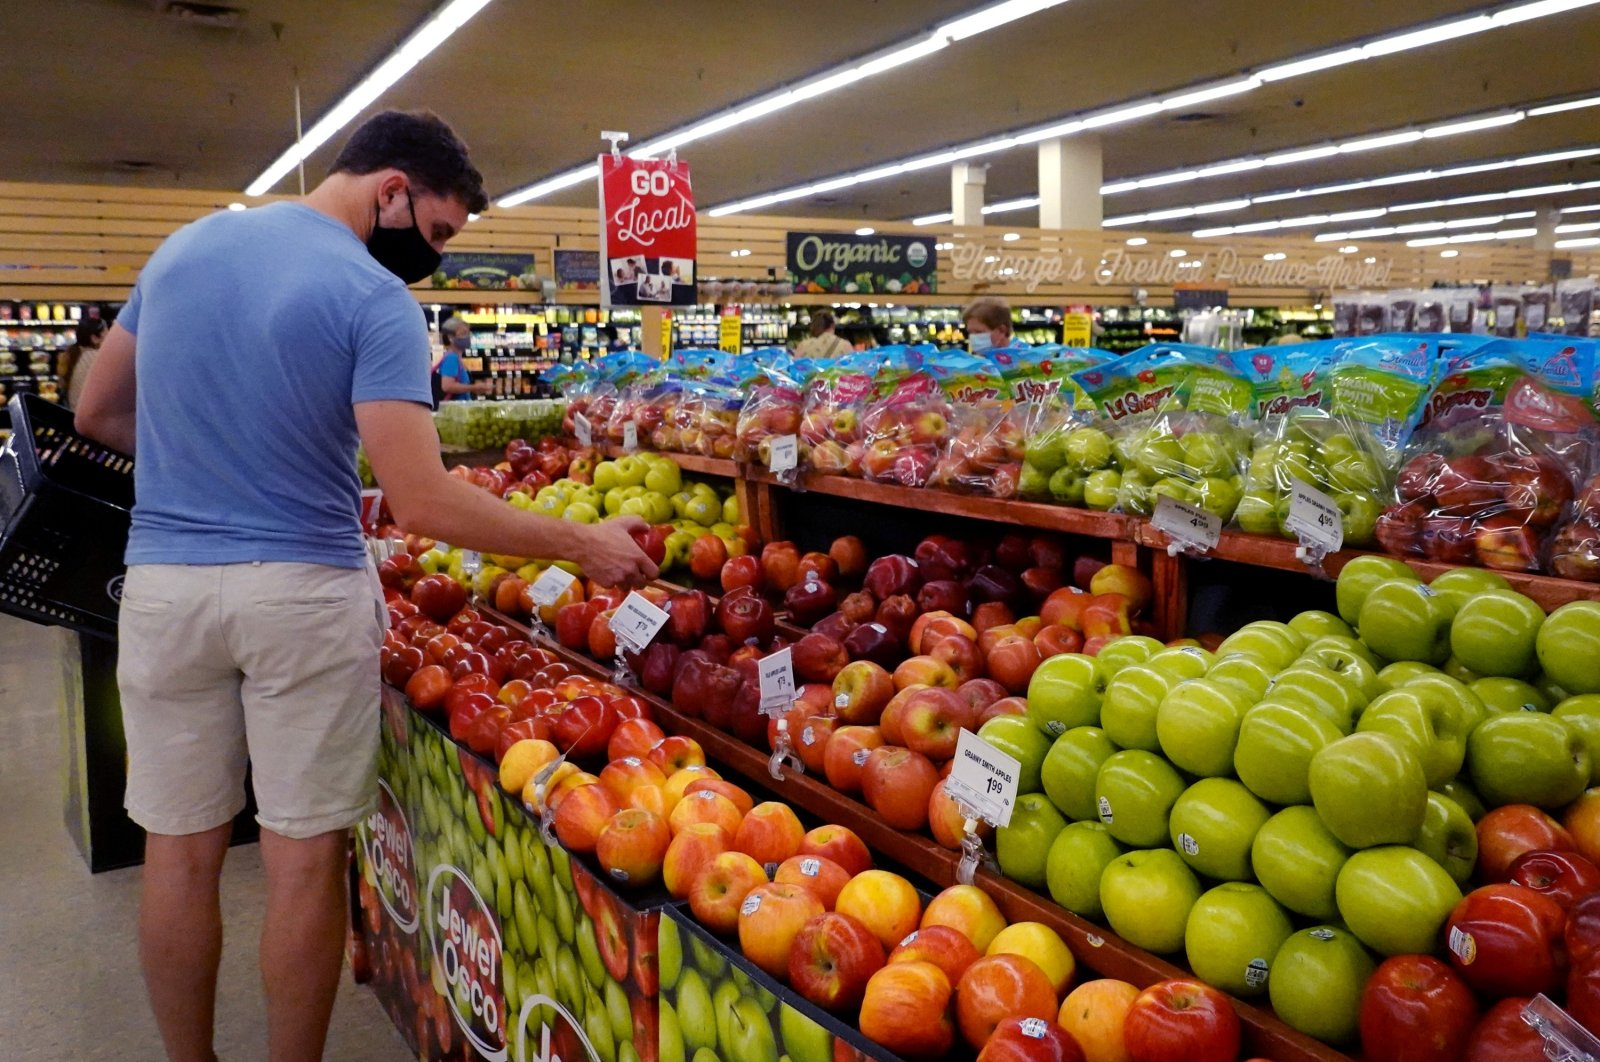 Customers shop for produce at a supermarket in Chicago, Illinois, U.S., June 10, 2021. (AFP Photo)